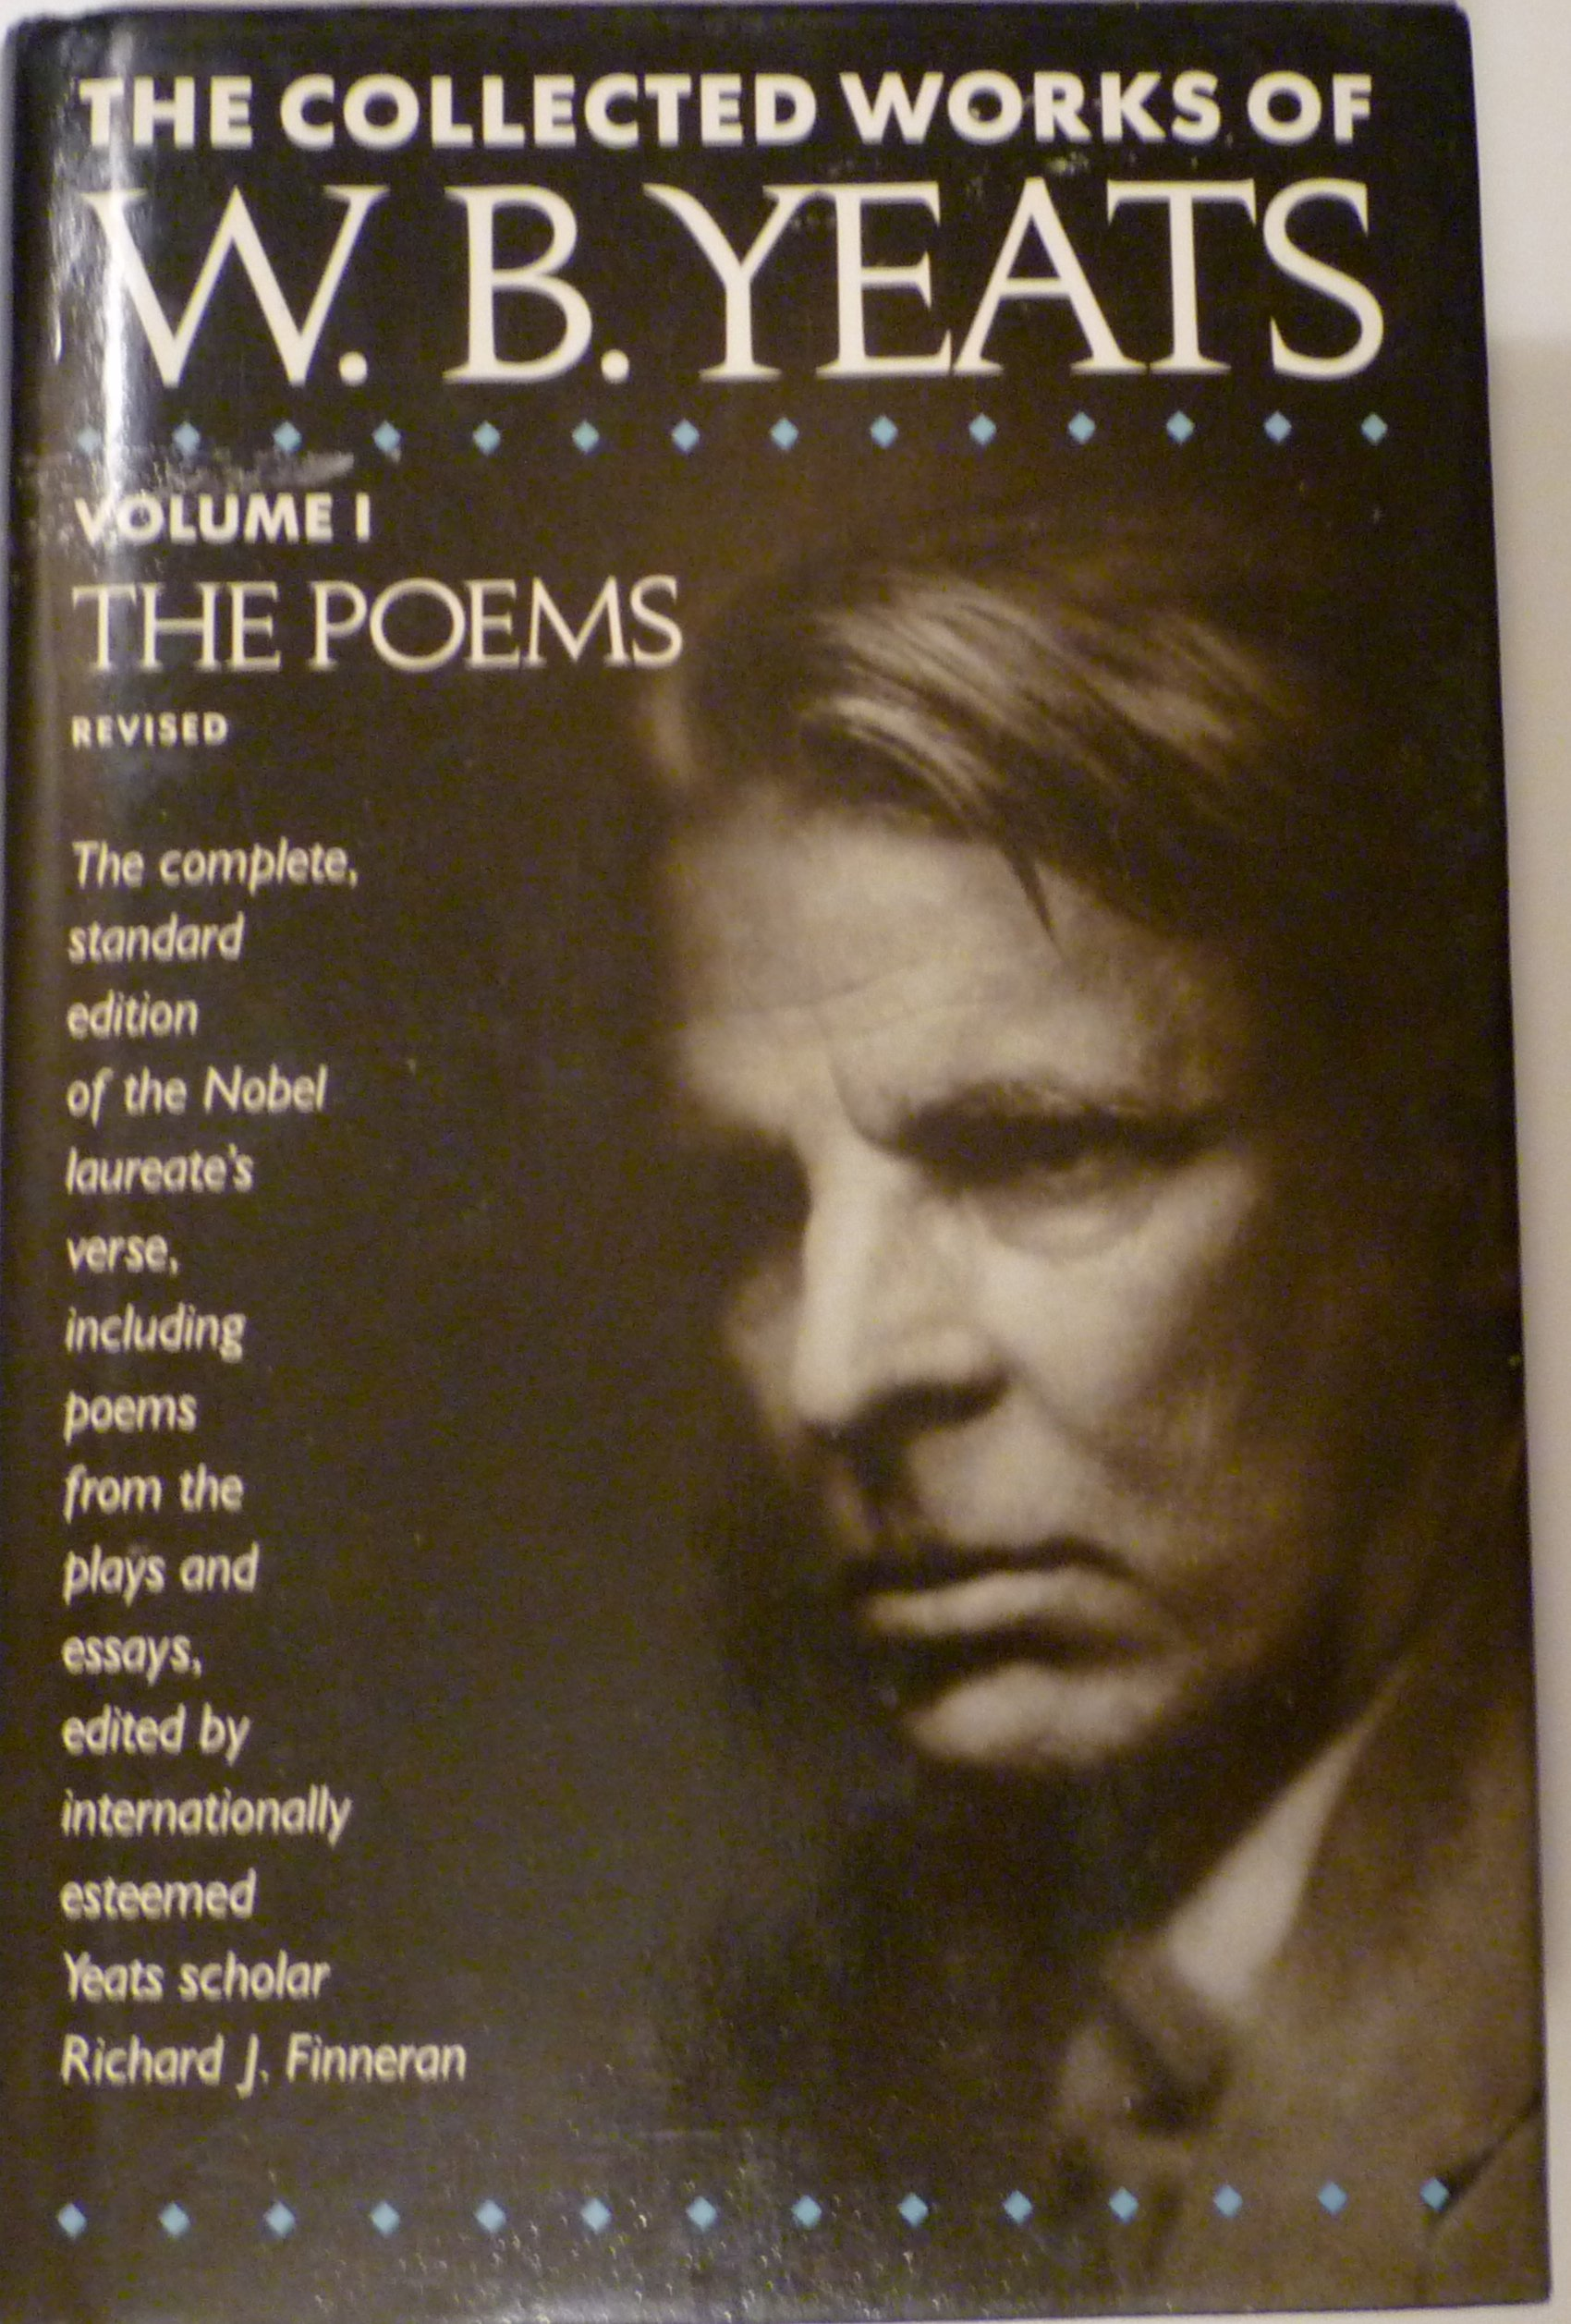 the poems revised the collected works of w b yeats william the poems revised the collected works of w b yeats william butler yeats 9780026327015 com books